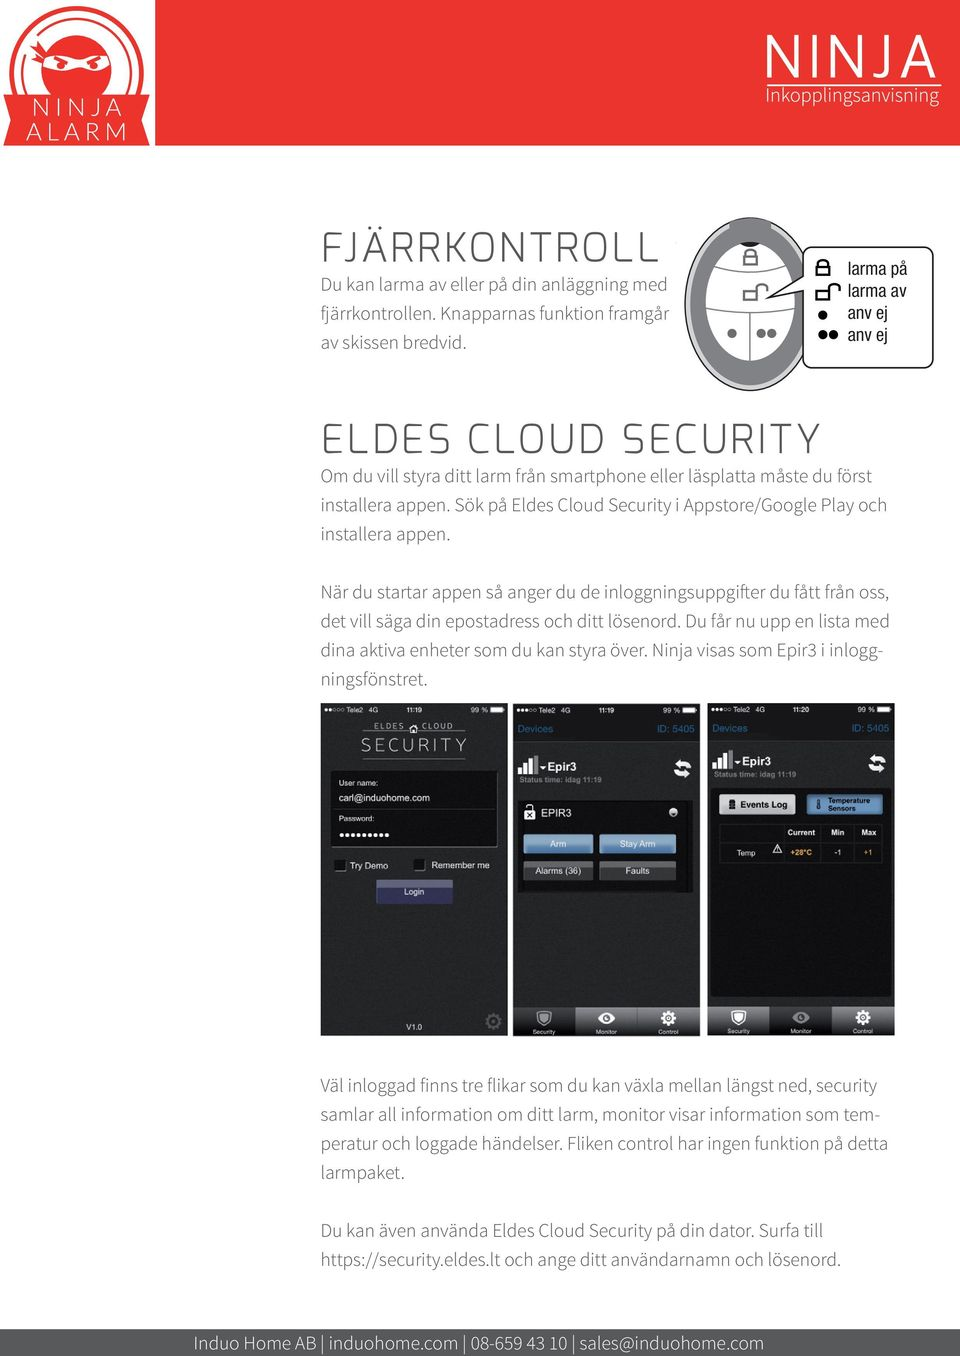 Sök på Eldes Cloud Security i Appstore/Google Play och installera appen. När du startar appen så anger du de inloggningsuppgifter du fått från oss, det vill säga din epostadress och ditt lösenord.